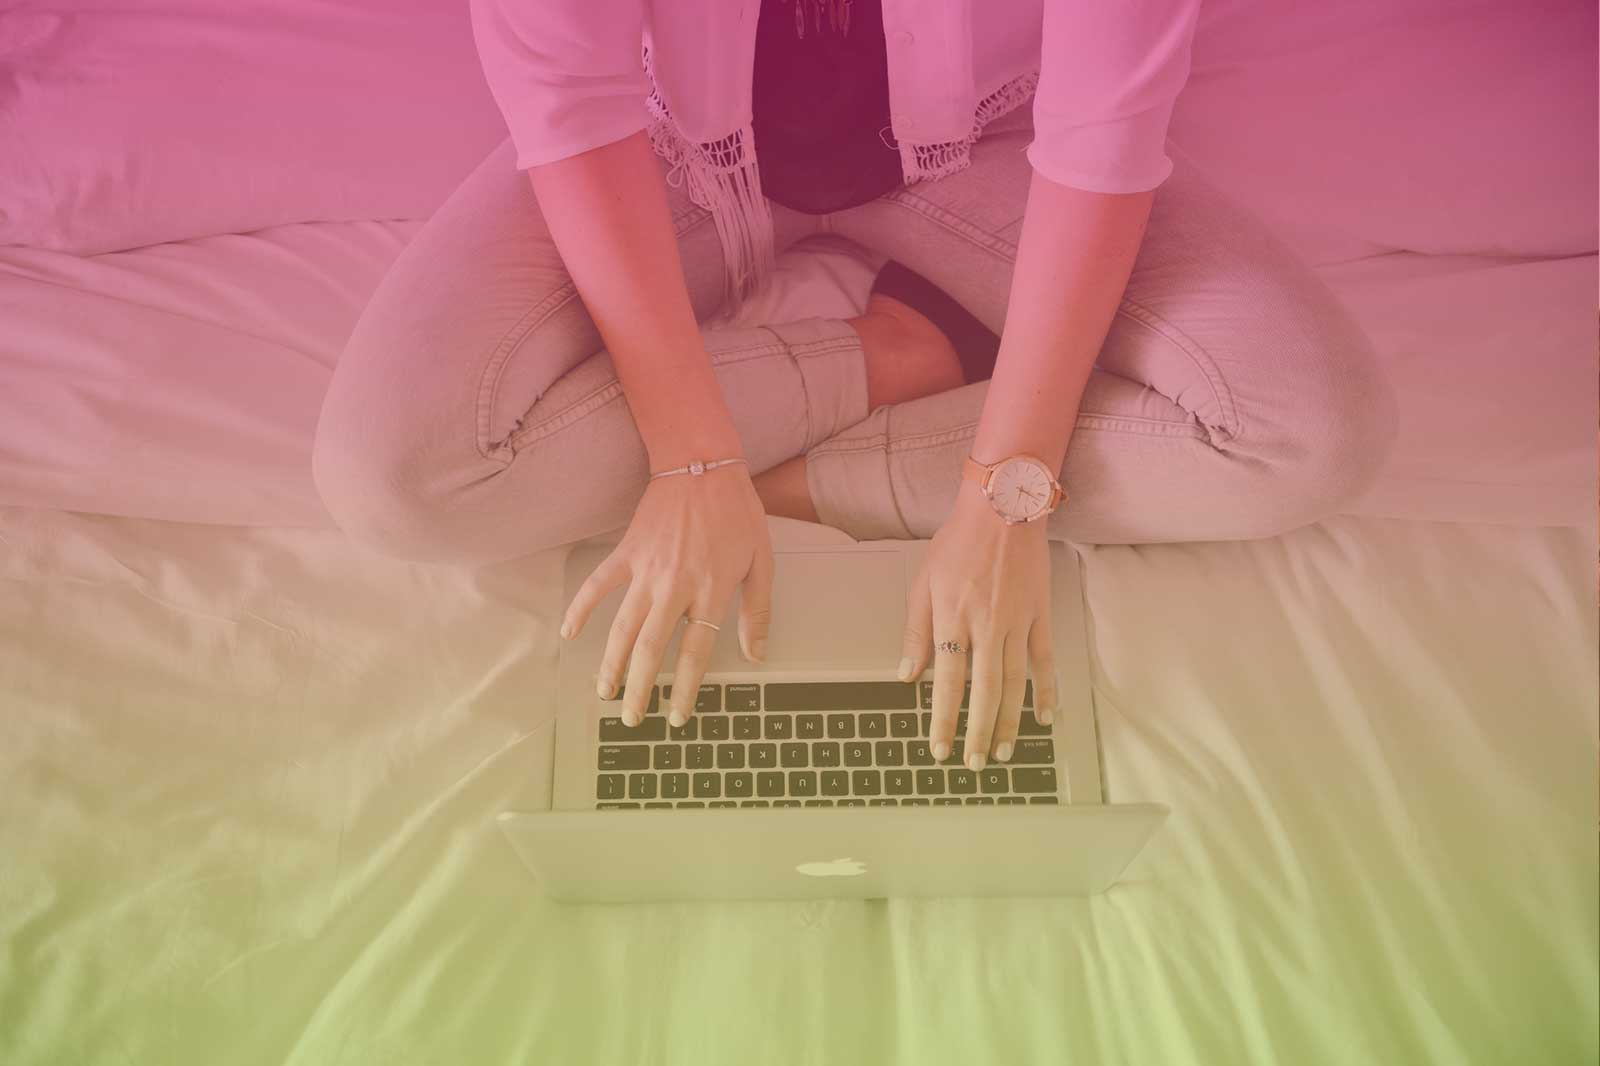 Protecting Your Writing Online